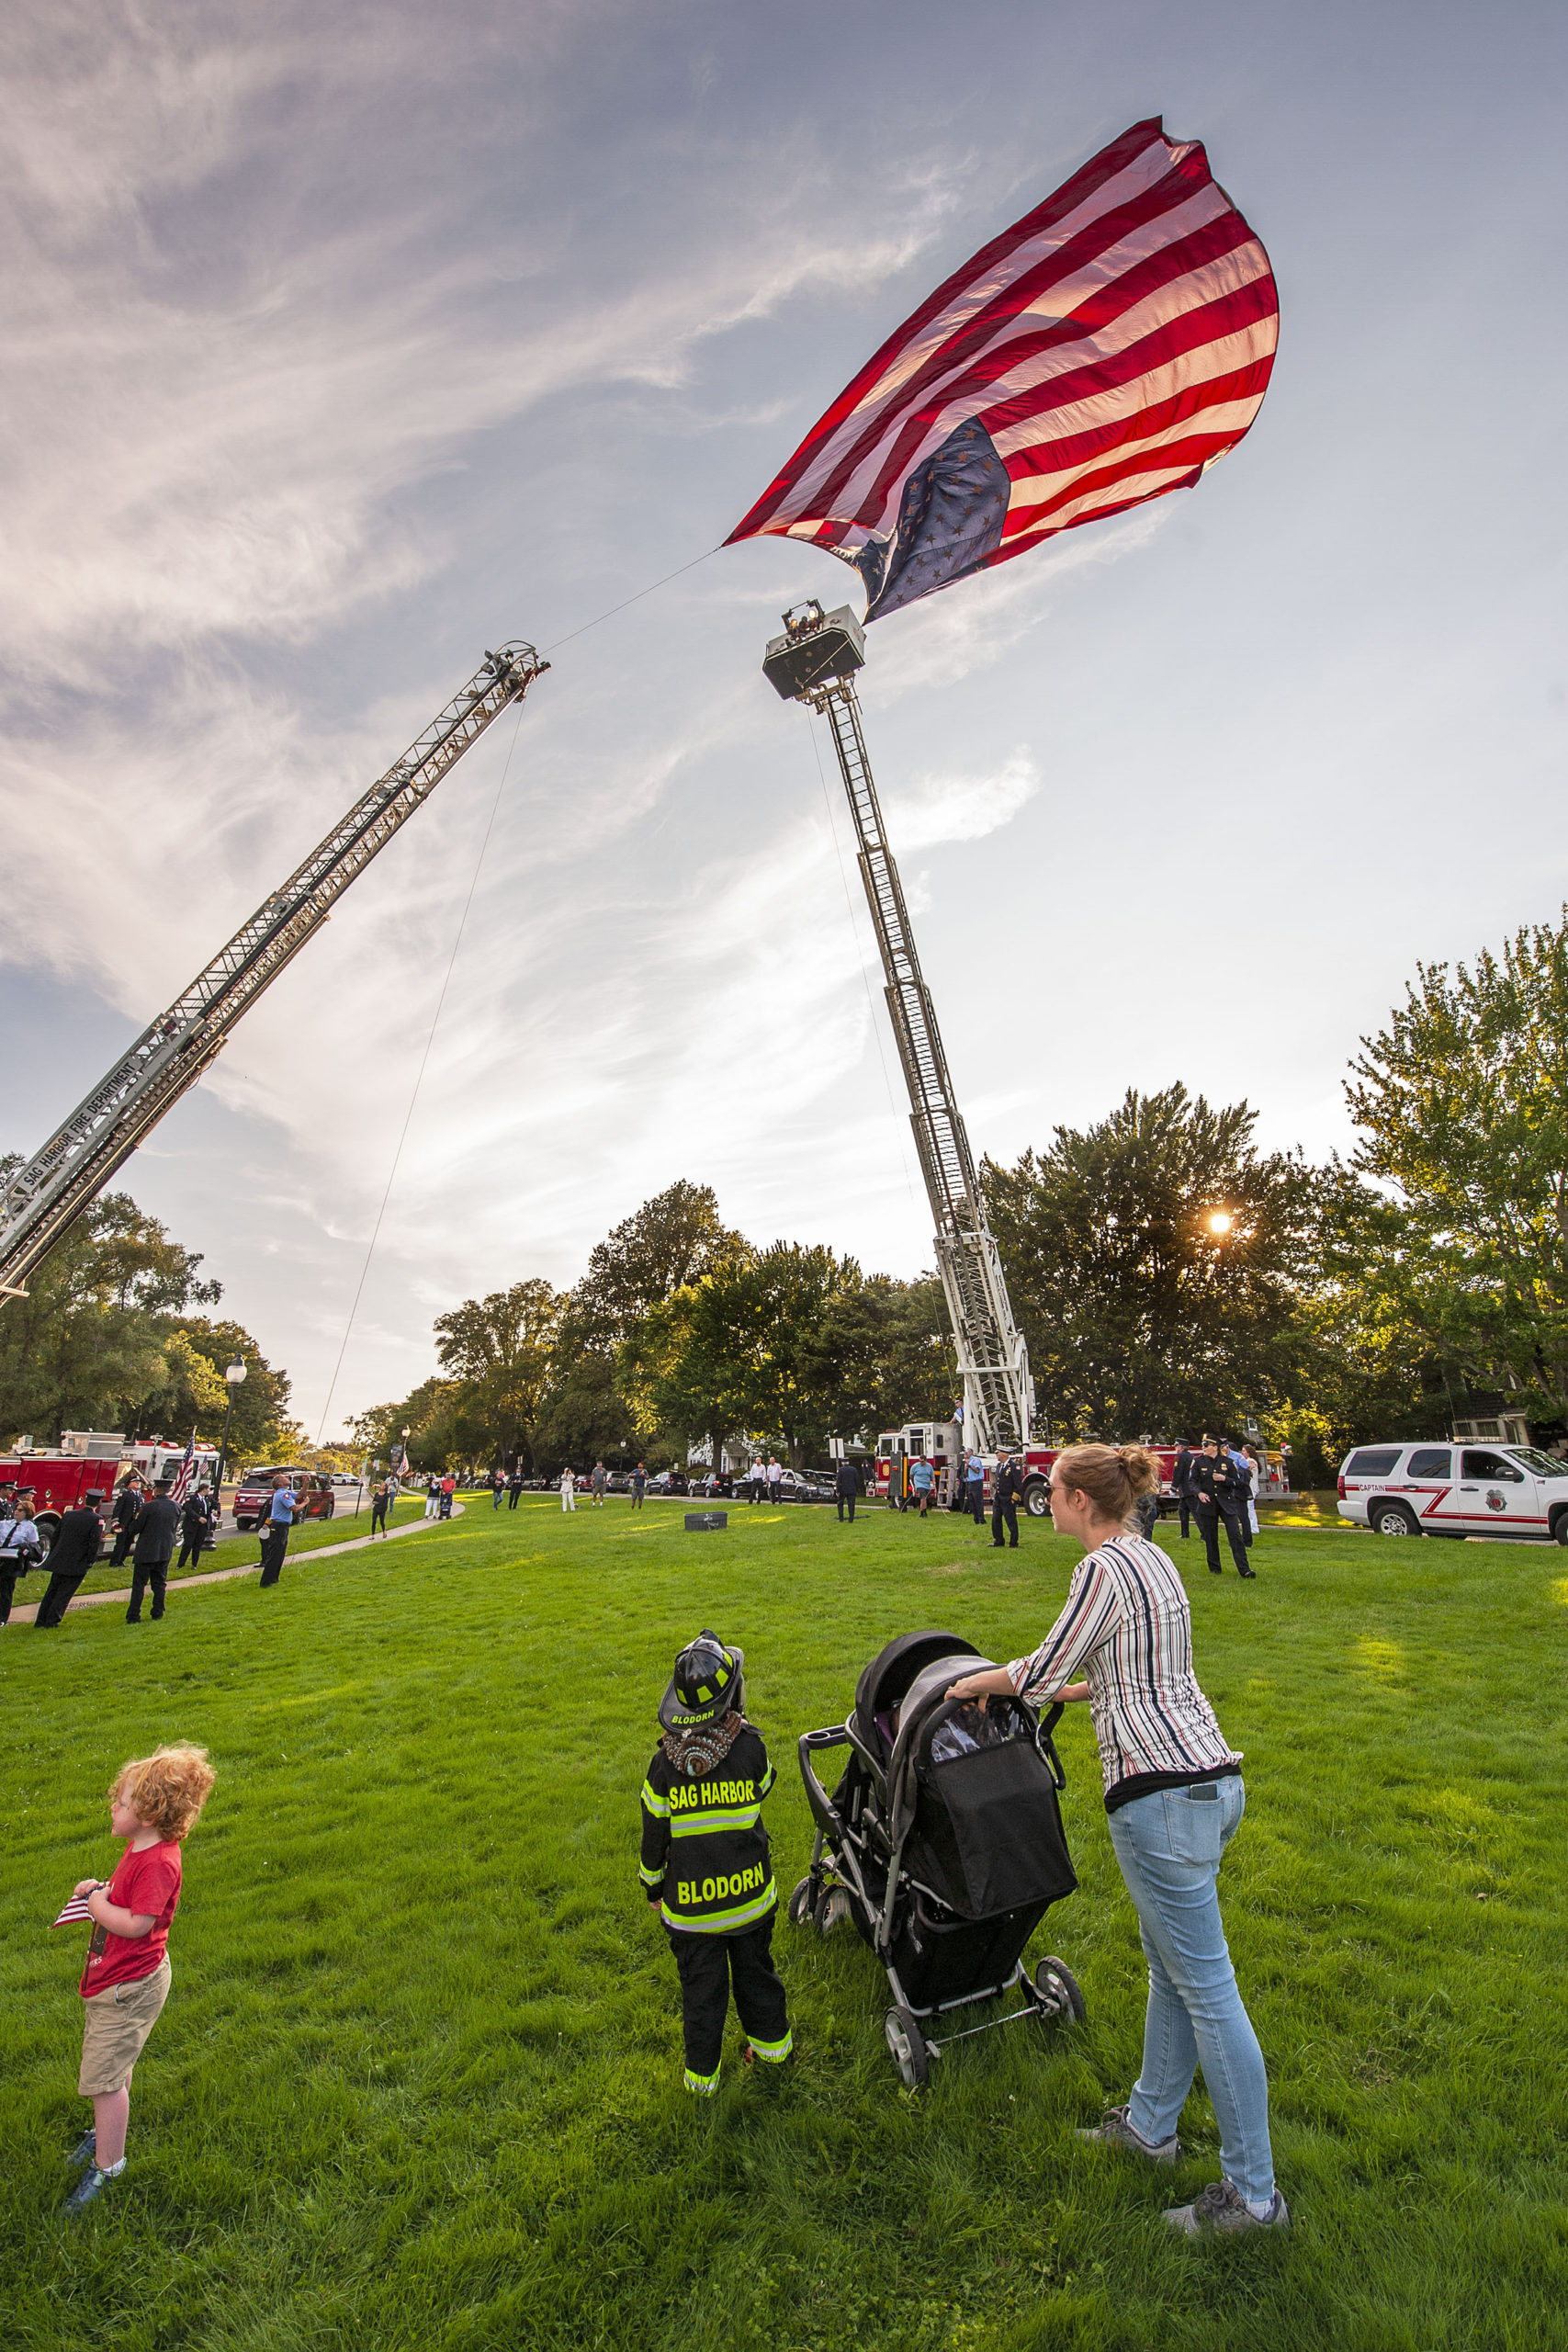 Five-year-old Connor Blodorn, son of Sag Harbor Fire Department Assistant Chief Andrew Blodorn, watches the American flag being raised by the East Hampton and Sag Harbor Fire Department ladder trucks prior to the start of the ceremony commemorating the 20th anniversary of the attack on the World Trade Center, held on the Village Green in East Hampton on Saturday afternoon.